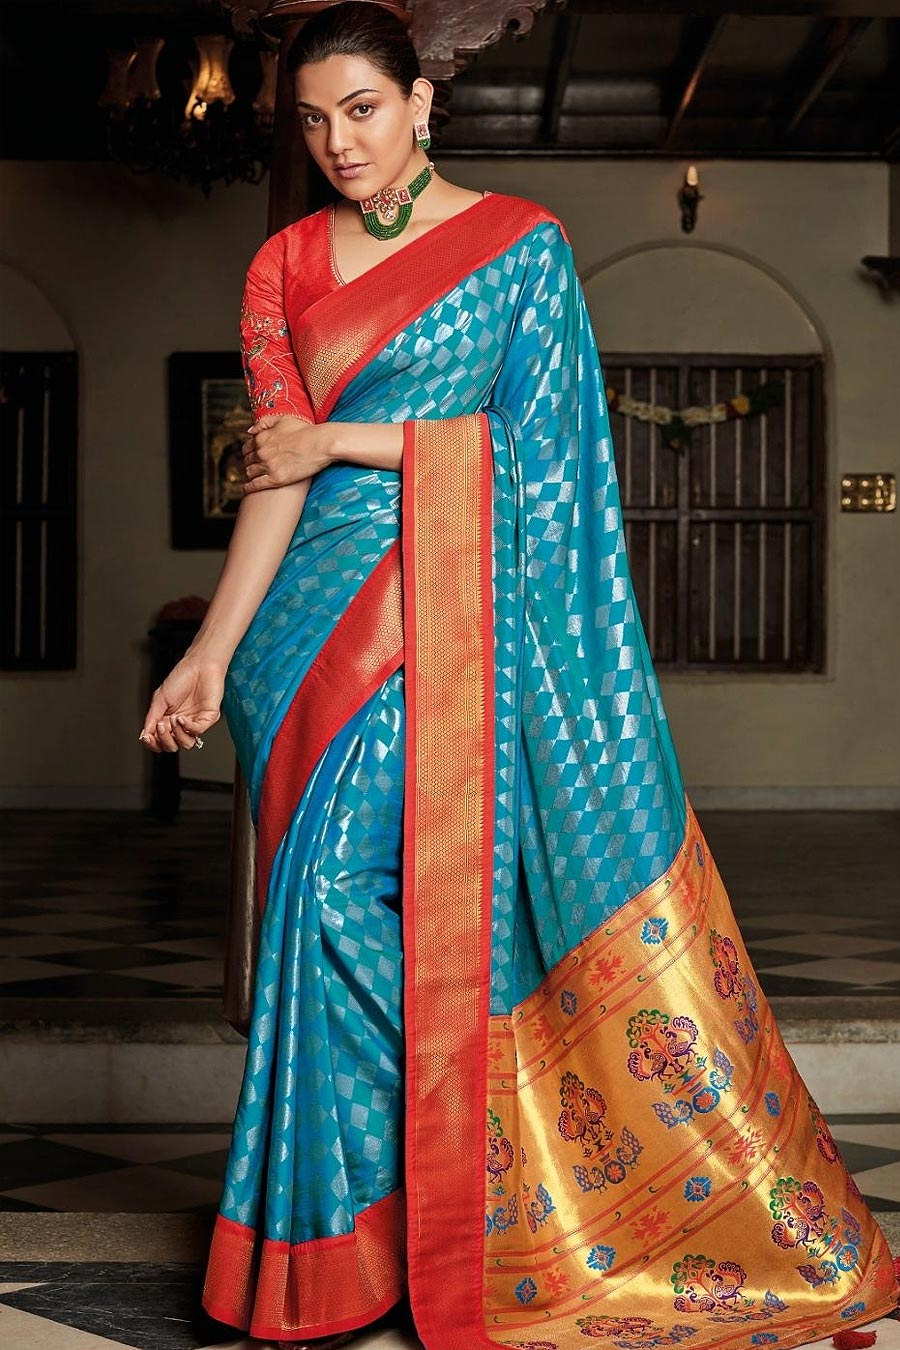 Blue Party Wear Woven Silk Saree with Peacock Motifs on Pallu